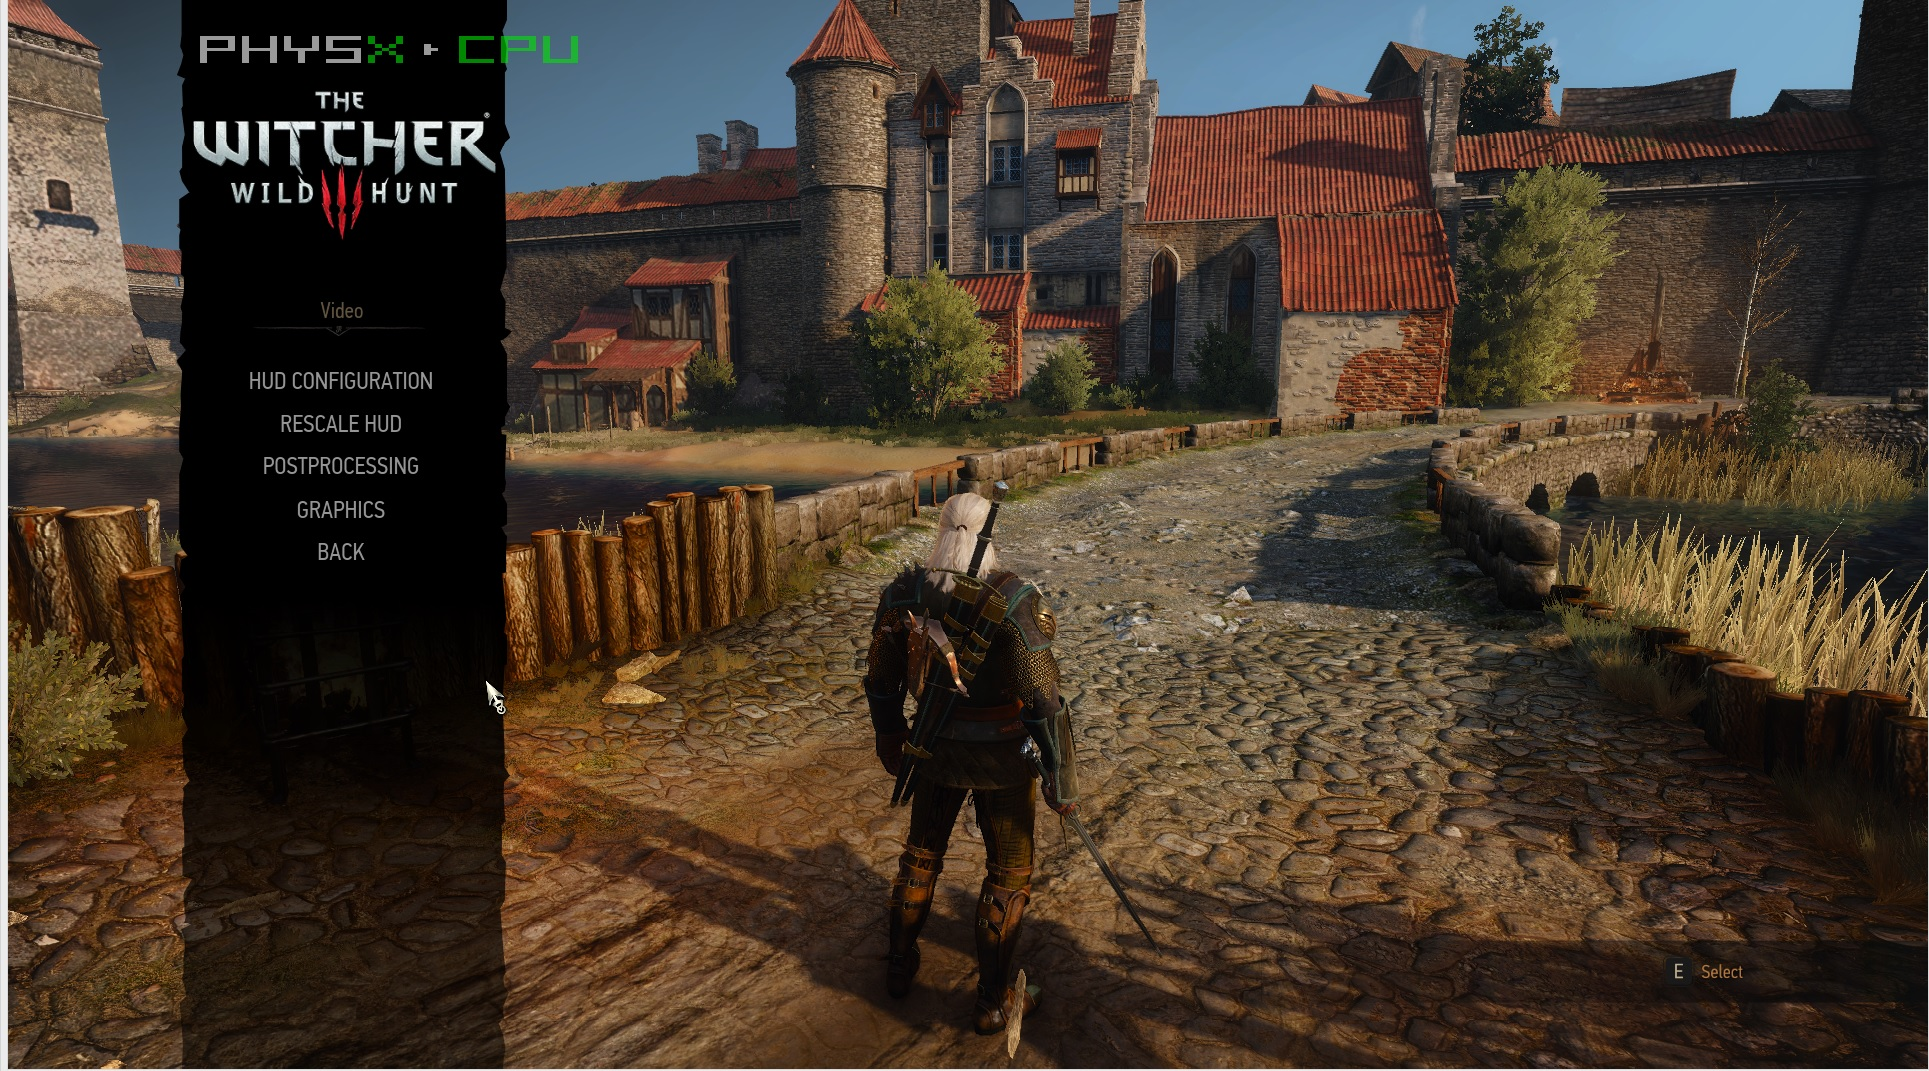 Official] The Witcher 3 Information & Discussion Thread